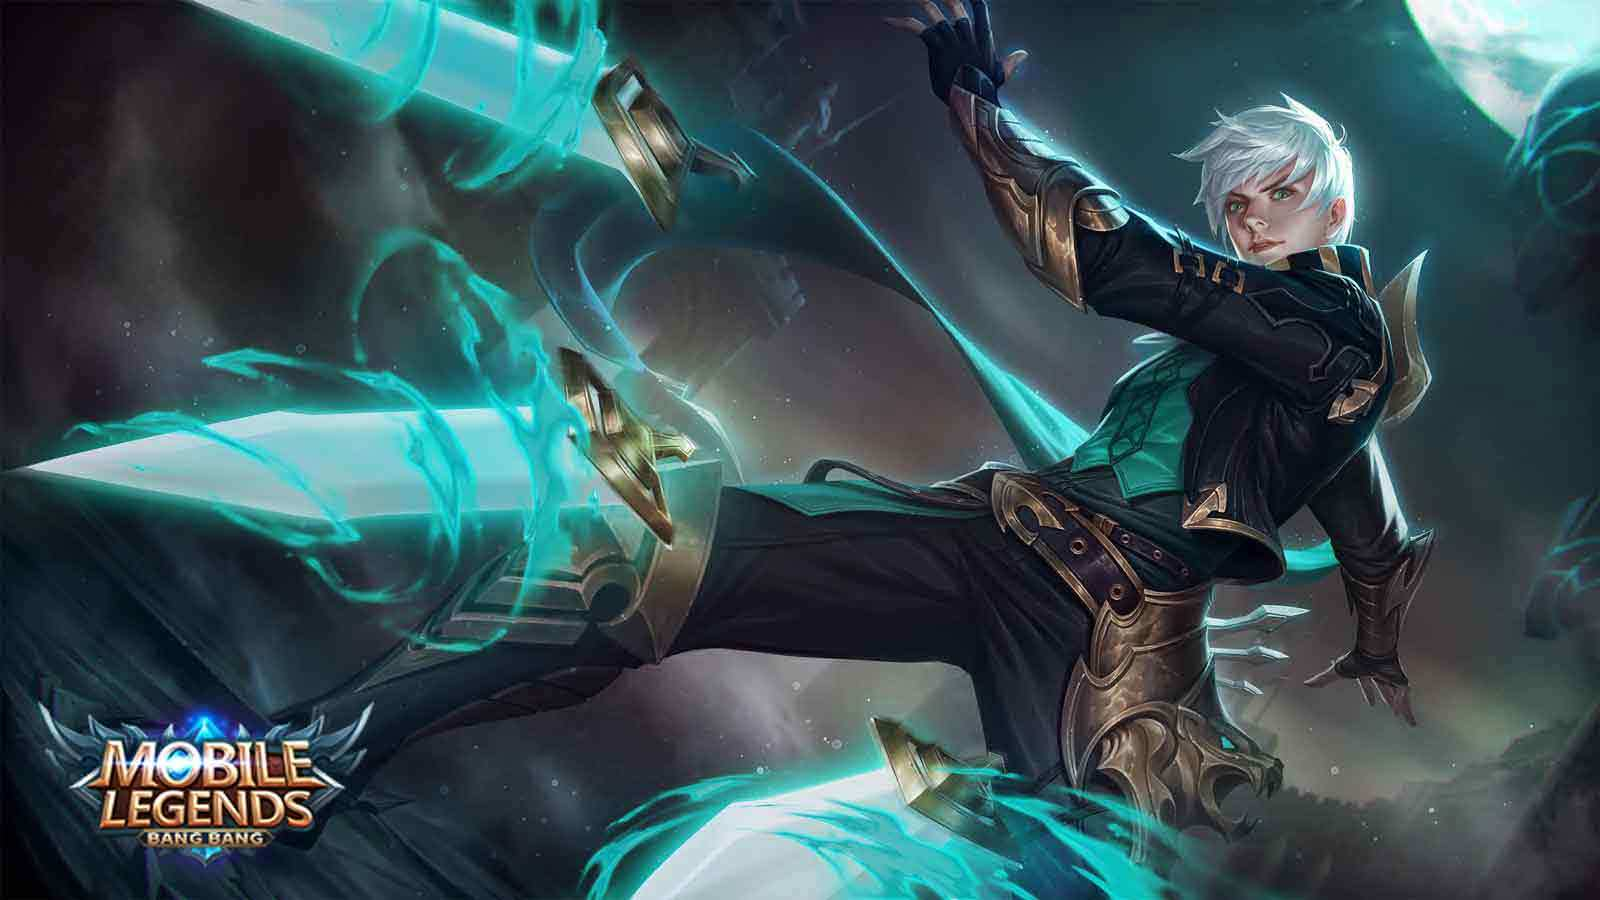 Hero Gossen Gusion Wallpapers 2019 Mobile Legends